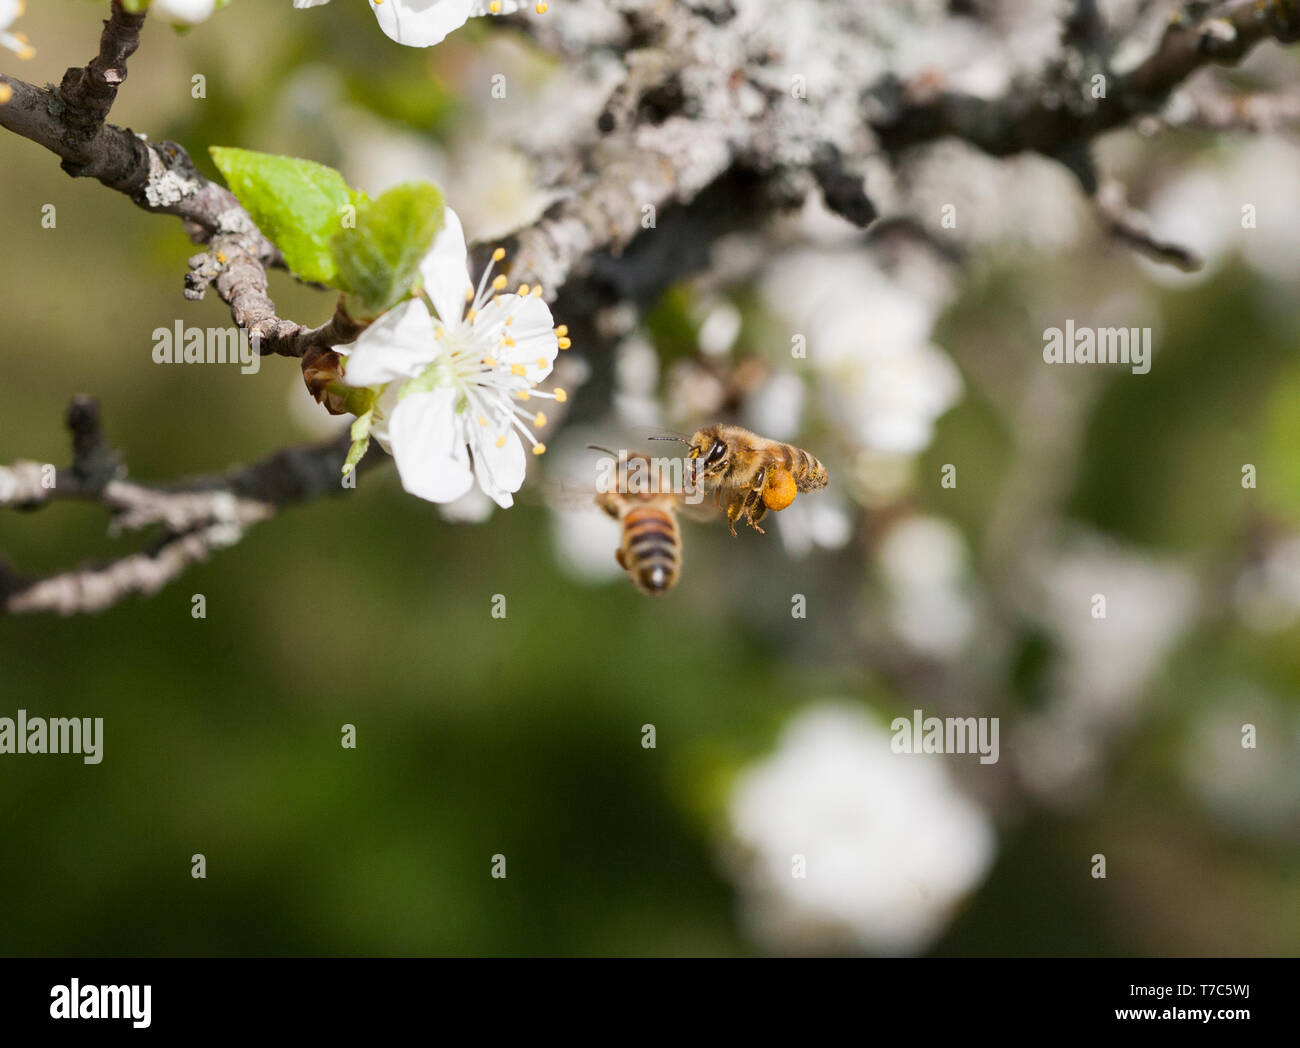 BEE Apoidea looking for nectar and pollen at a blooming plum tree - Stock Image